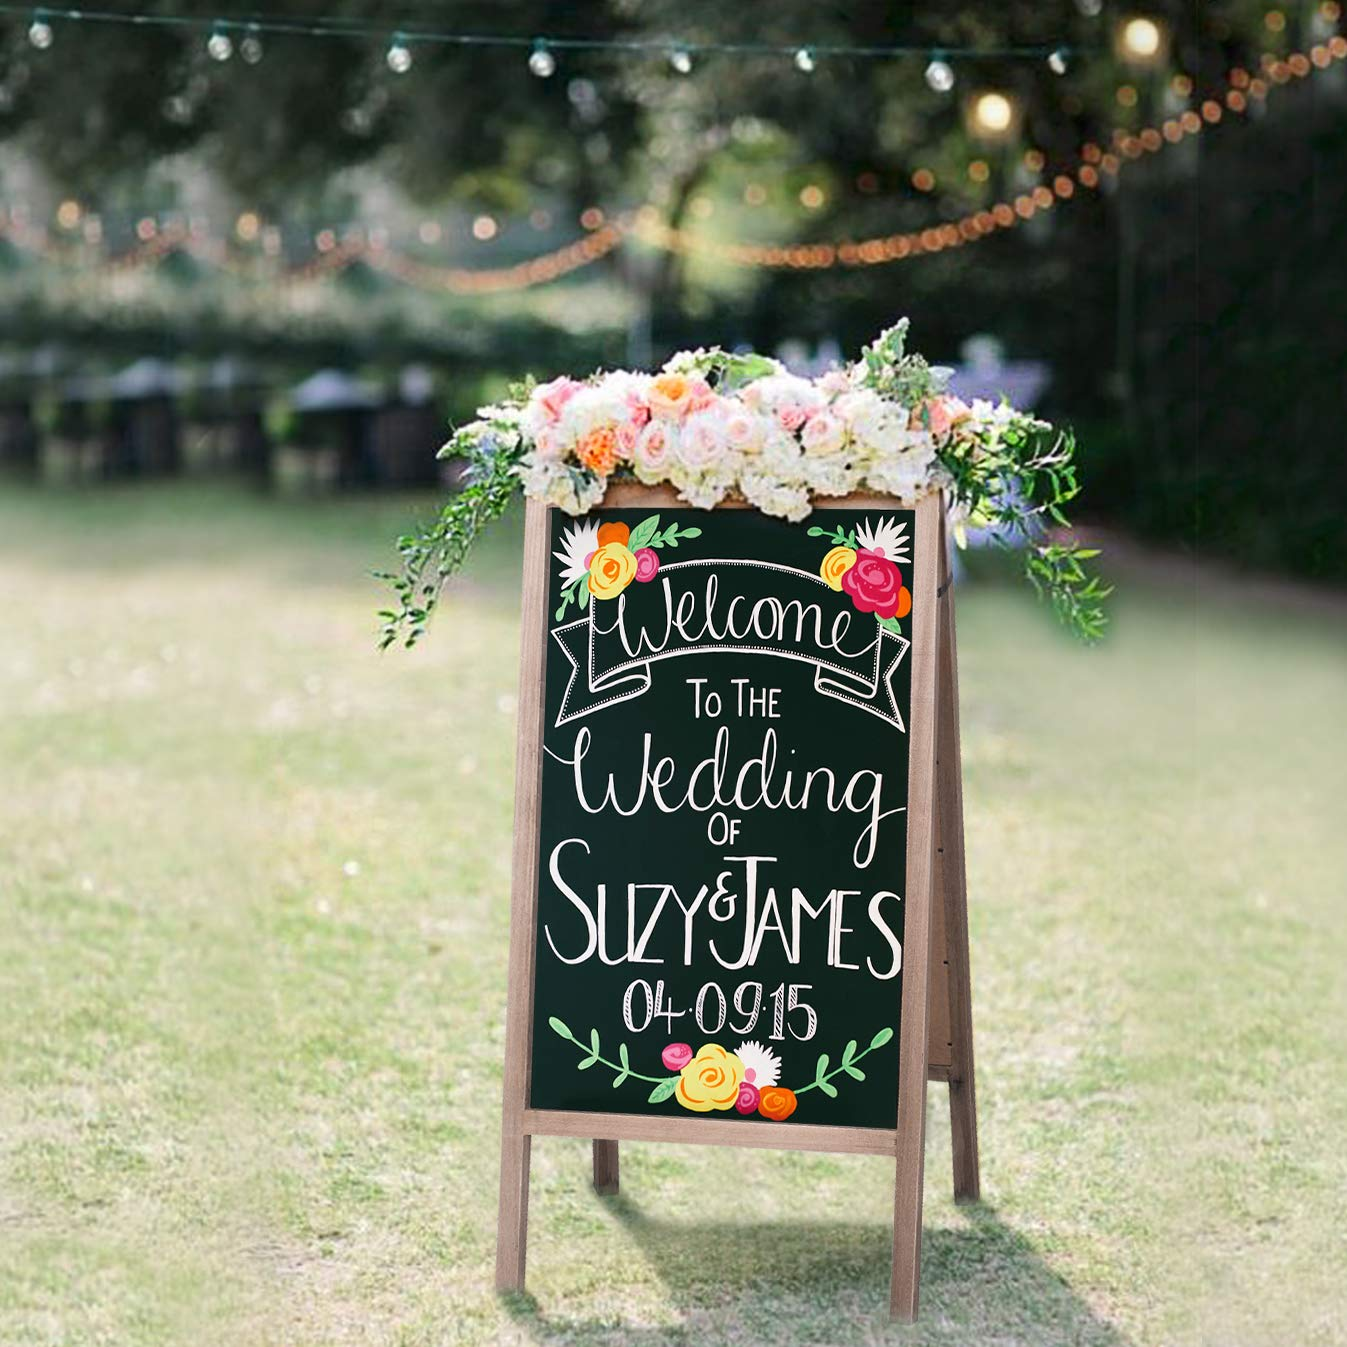 RHF Double Sided Chalk Board Sign,Sidewalk Sign,Sandwich Chalkboards,Rustic Freestanding A-Frame Wedding Decoration,Non-Porous Message, Chalkboard Easel,Store Display Sign Blackboard 40''